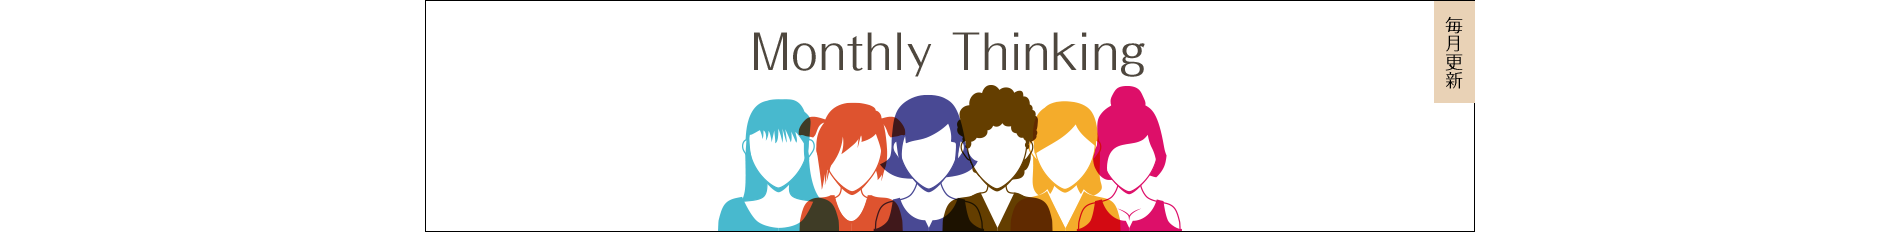 Monthly Thinking TOP